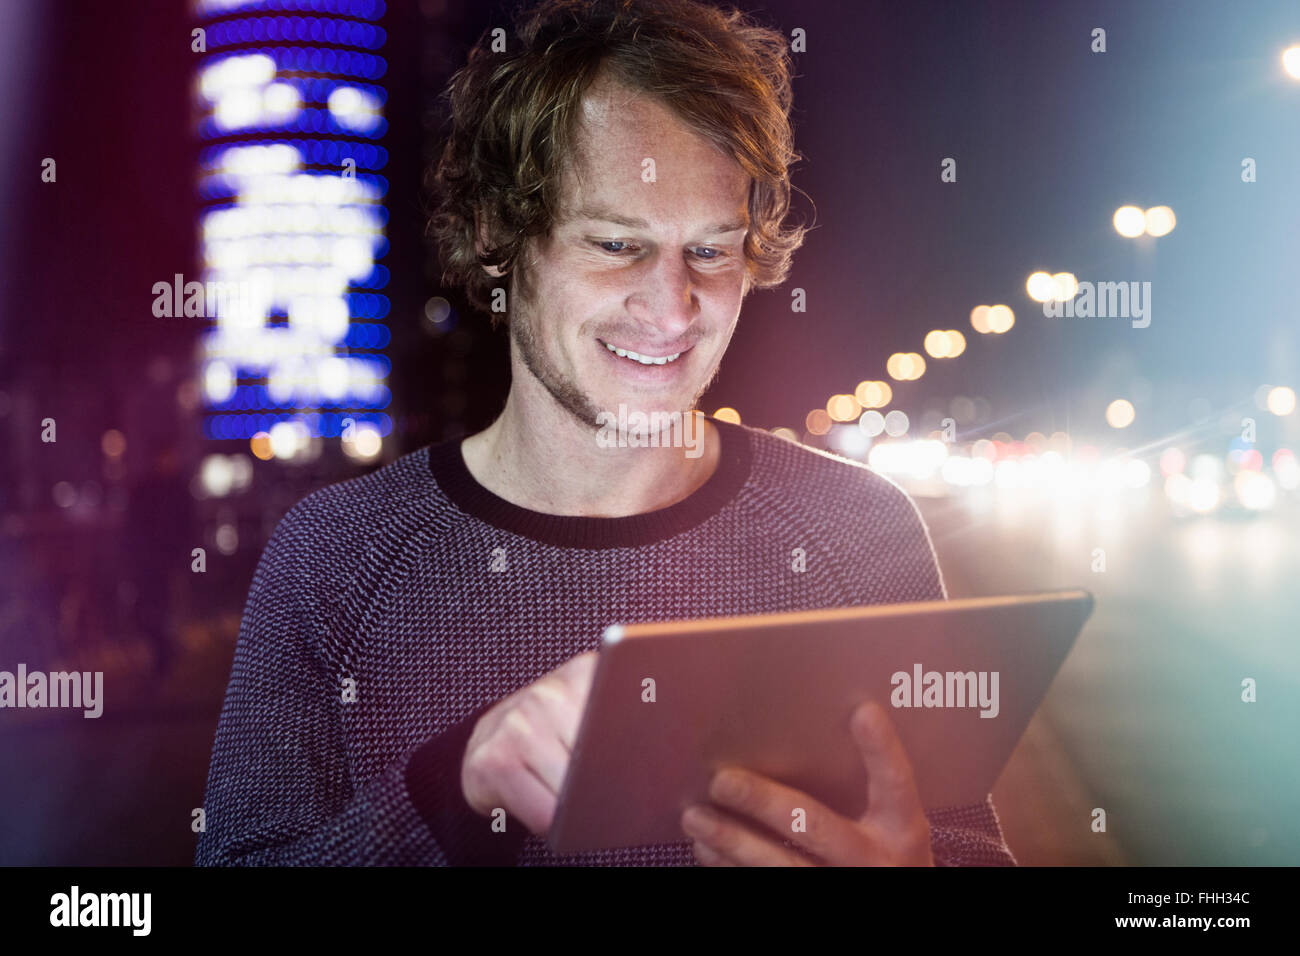 Germany, Munich, portrait of smiling man using digital tablet at night - Stock Image